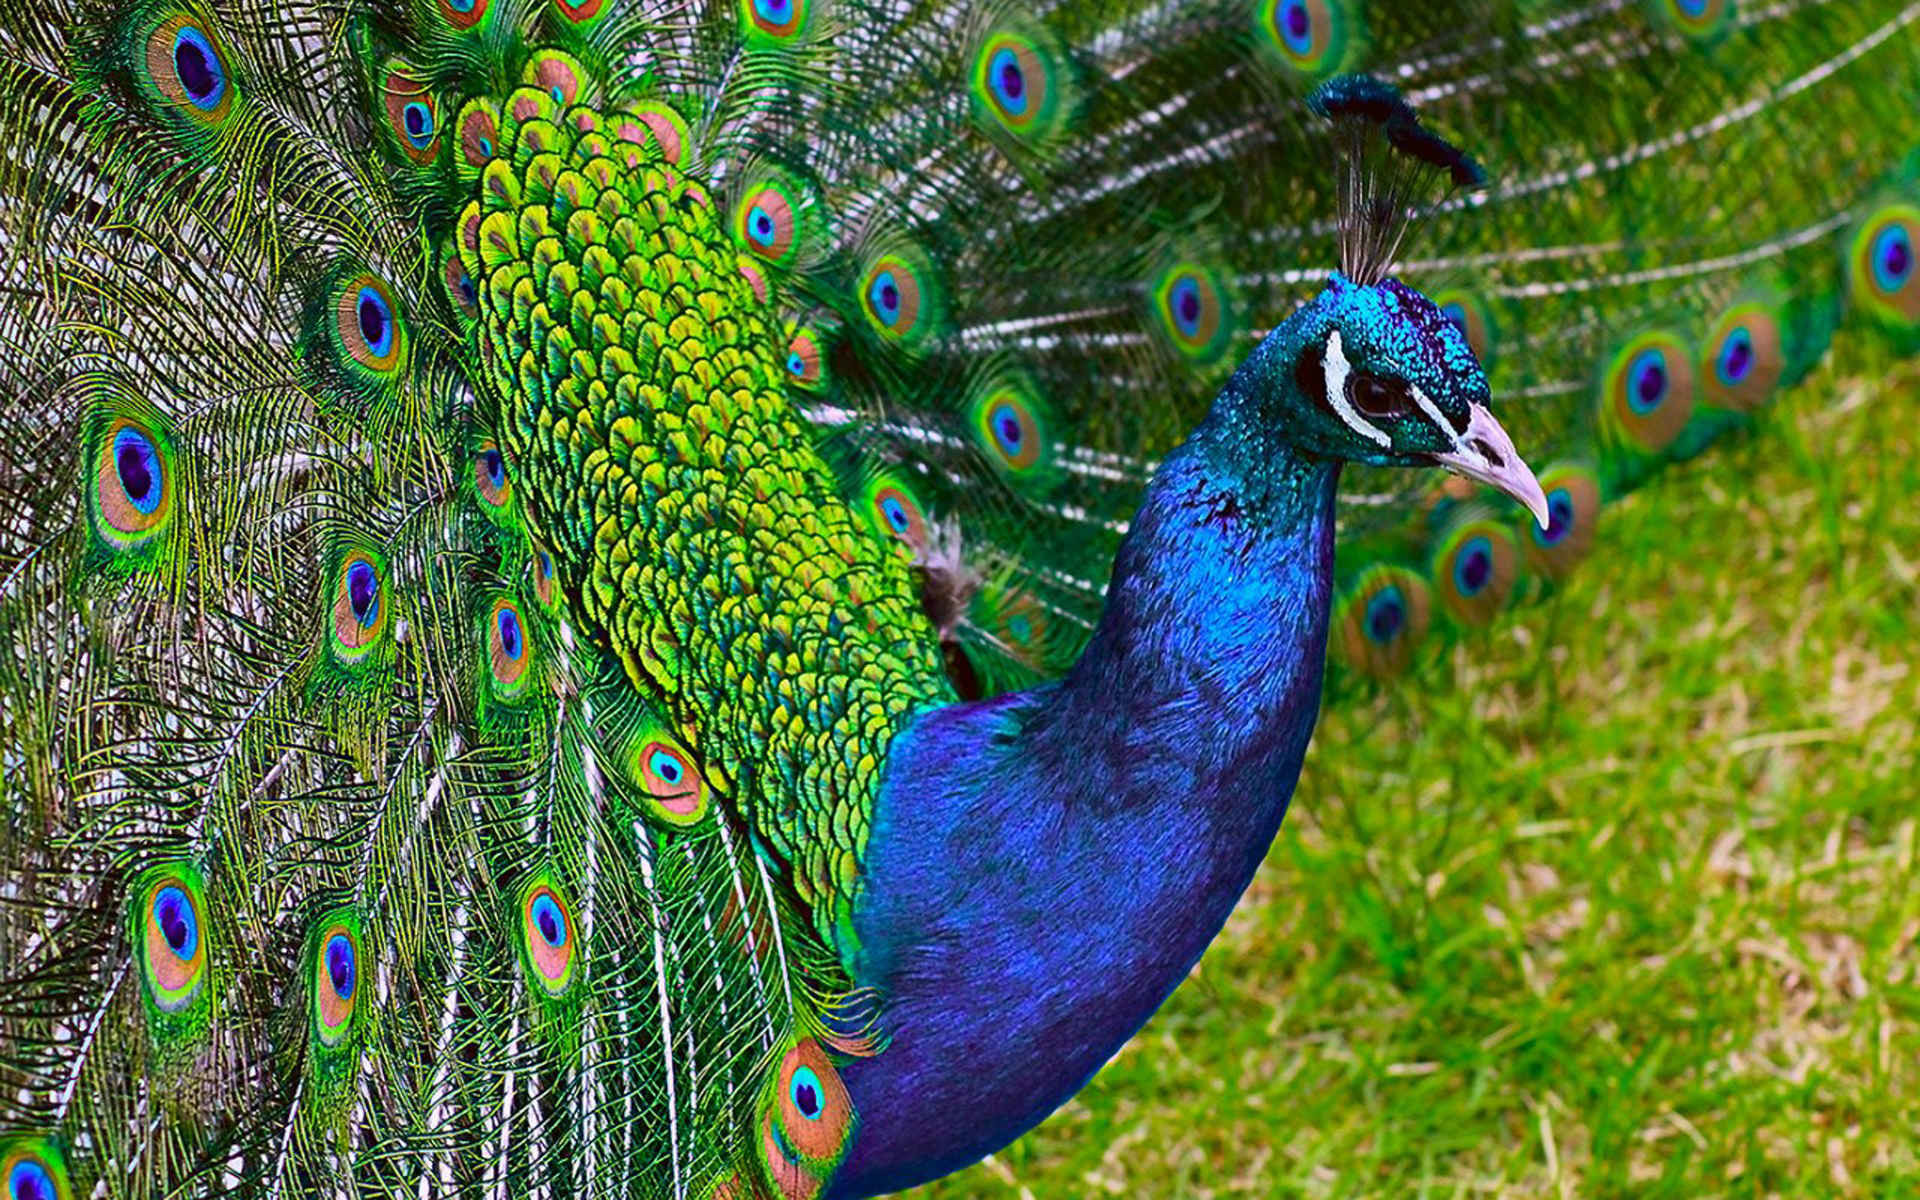 Wallpapers of Peacock Feathers HD 2018 ·①  Wallpapers of P...